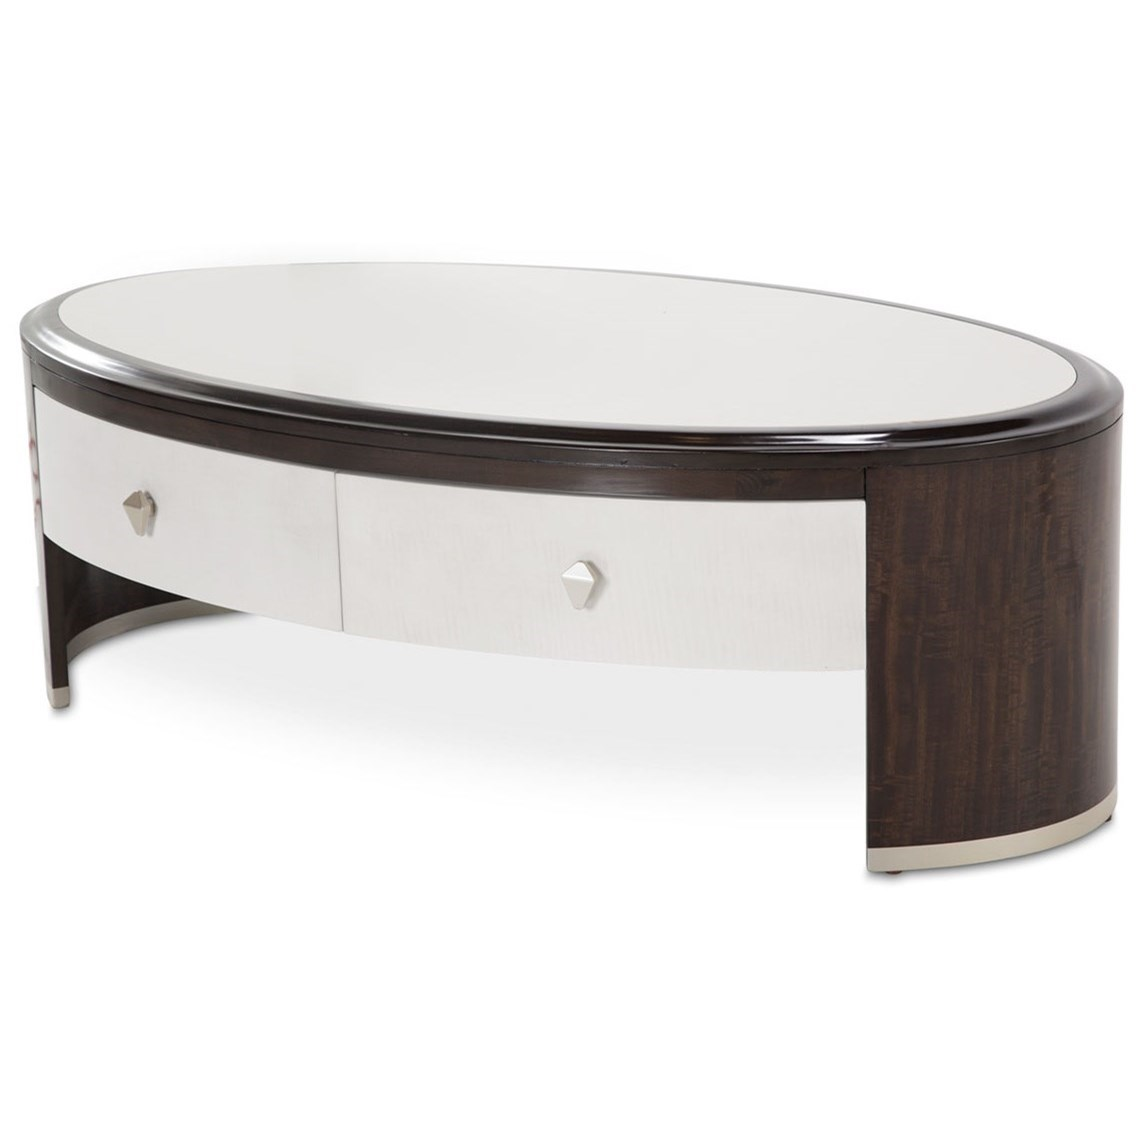 Paris Chic Oval Cocktail Table by Michael Amini at Darvin Furniture